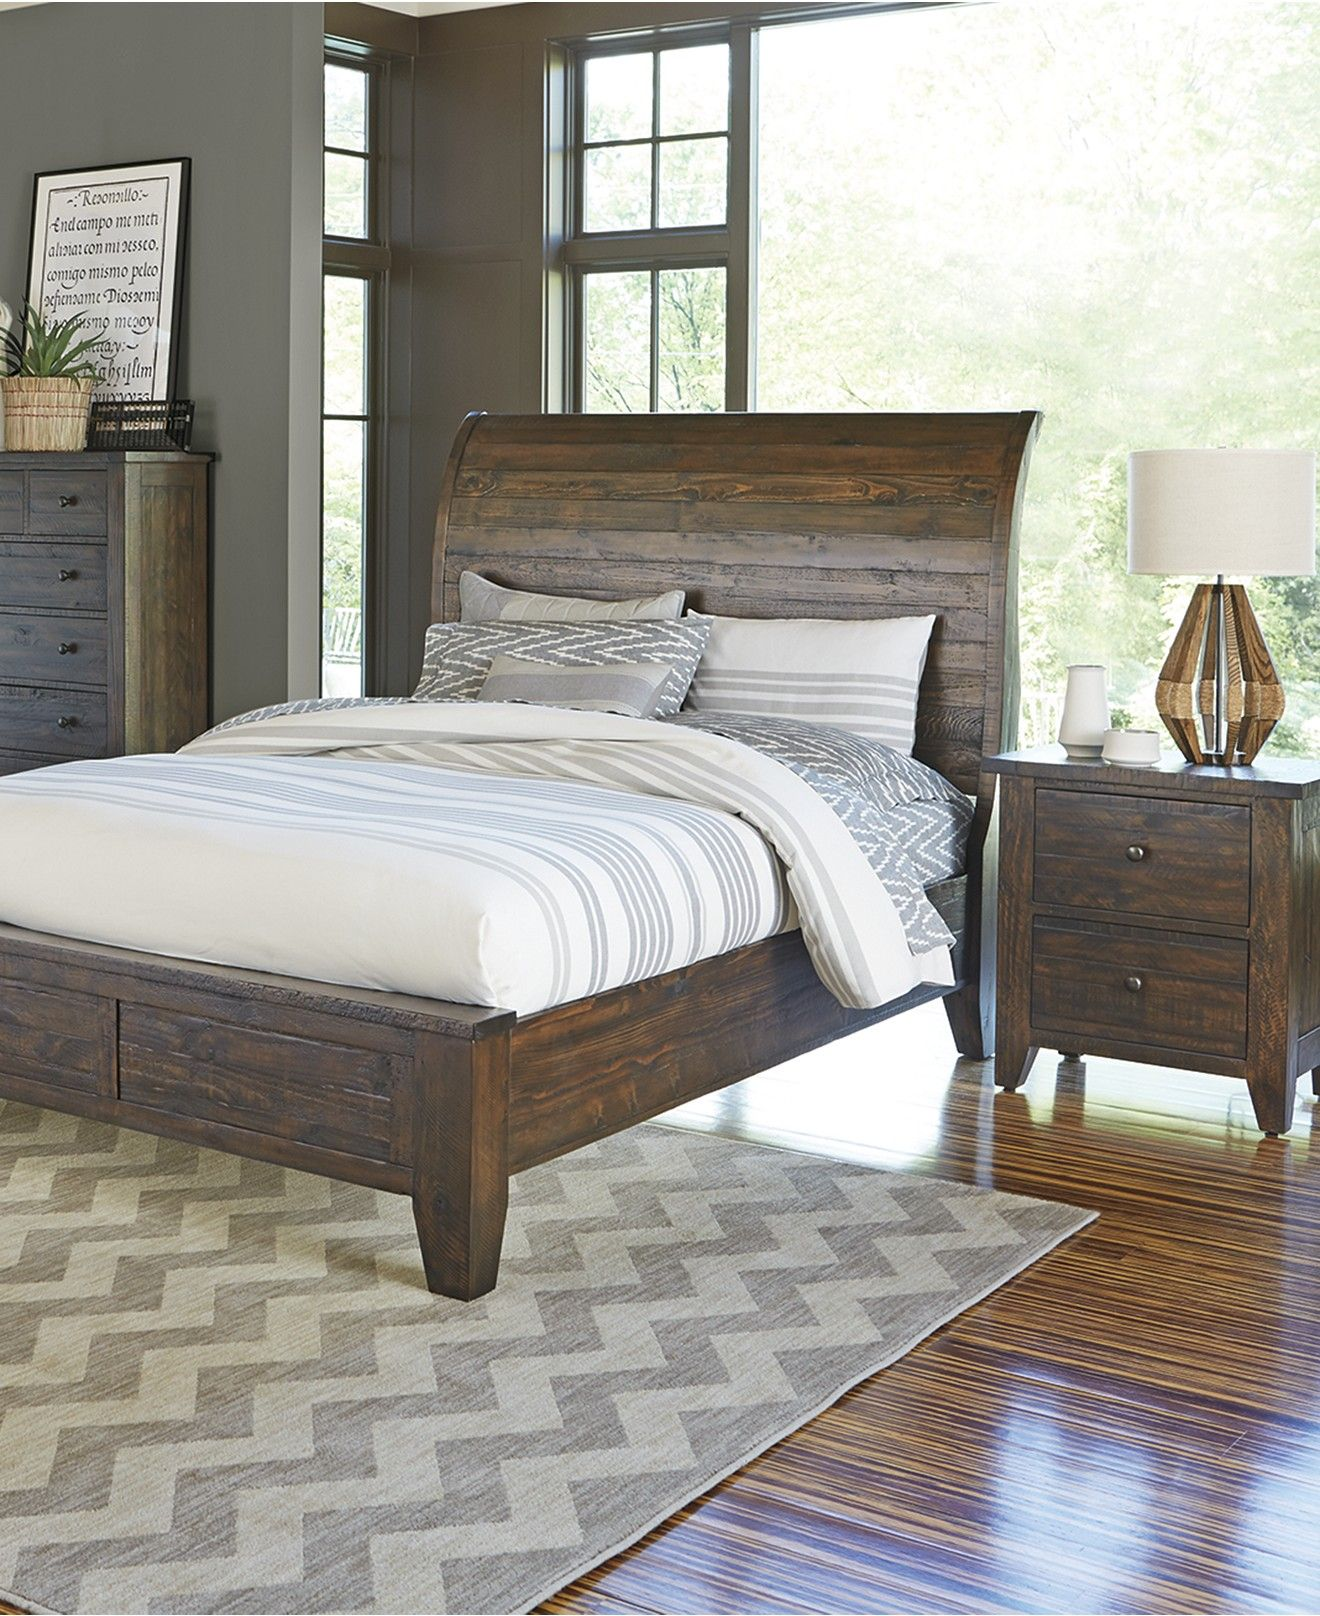 Ember Bedroom Furniture, 3-Pc. Set (King Bed, Nightstand